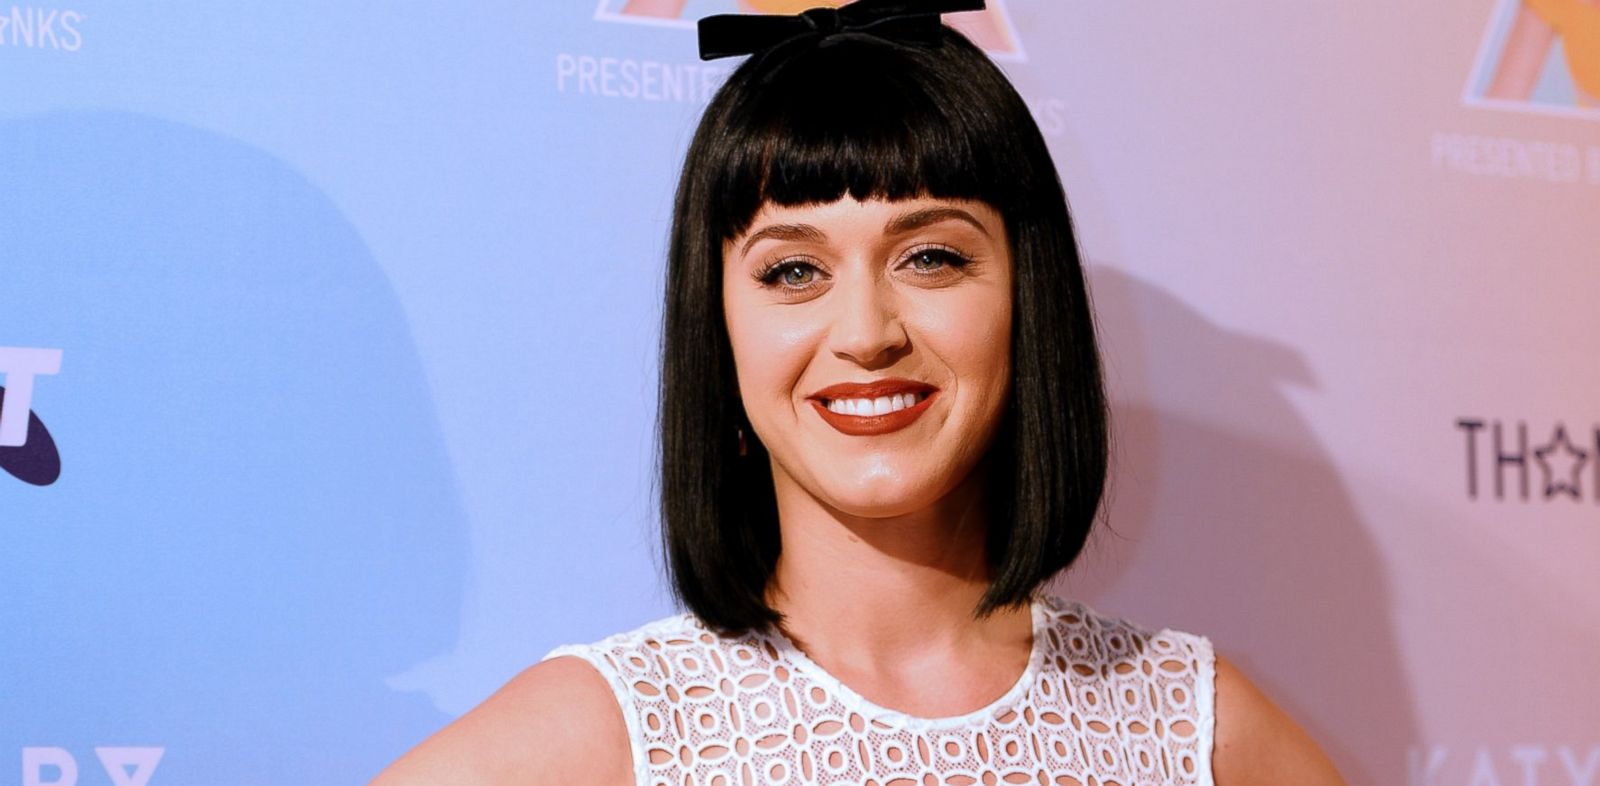 PHOTO: American singer Katy Perry poses for photos at the launch of her Prismatic world tour in Sydney On March 4, 2014.